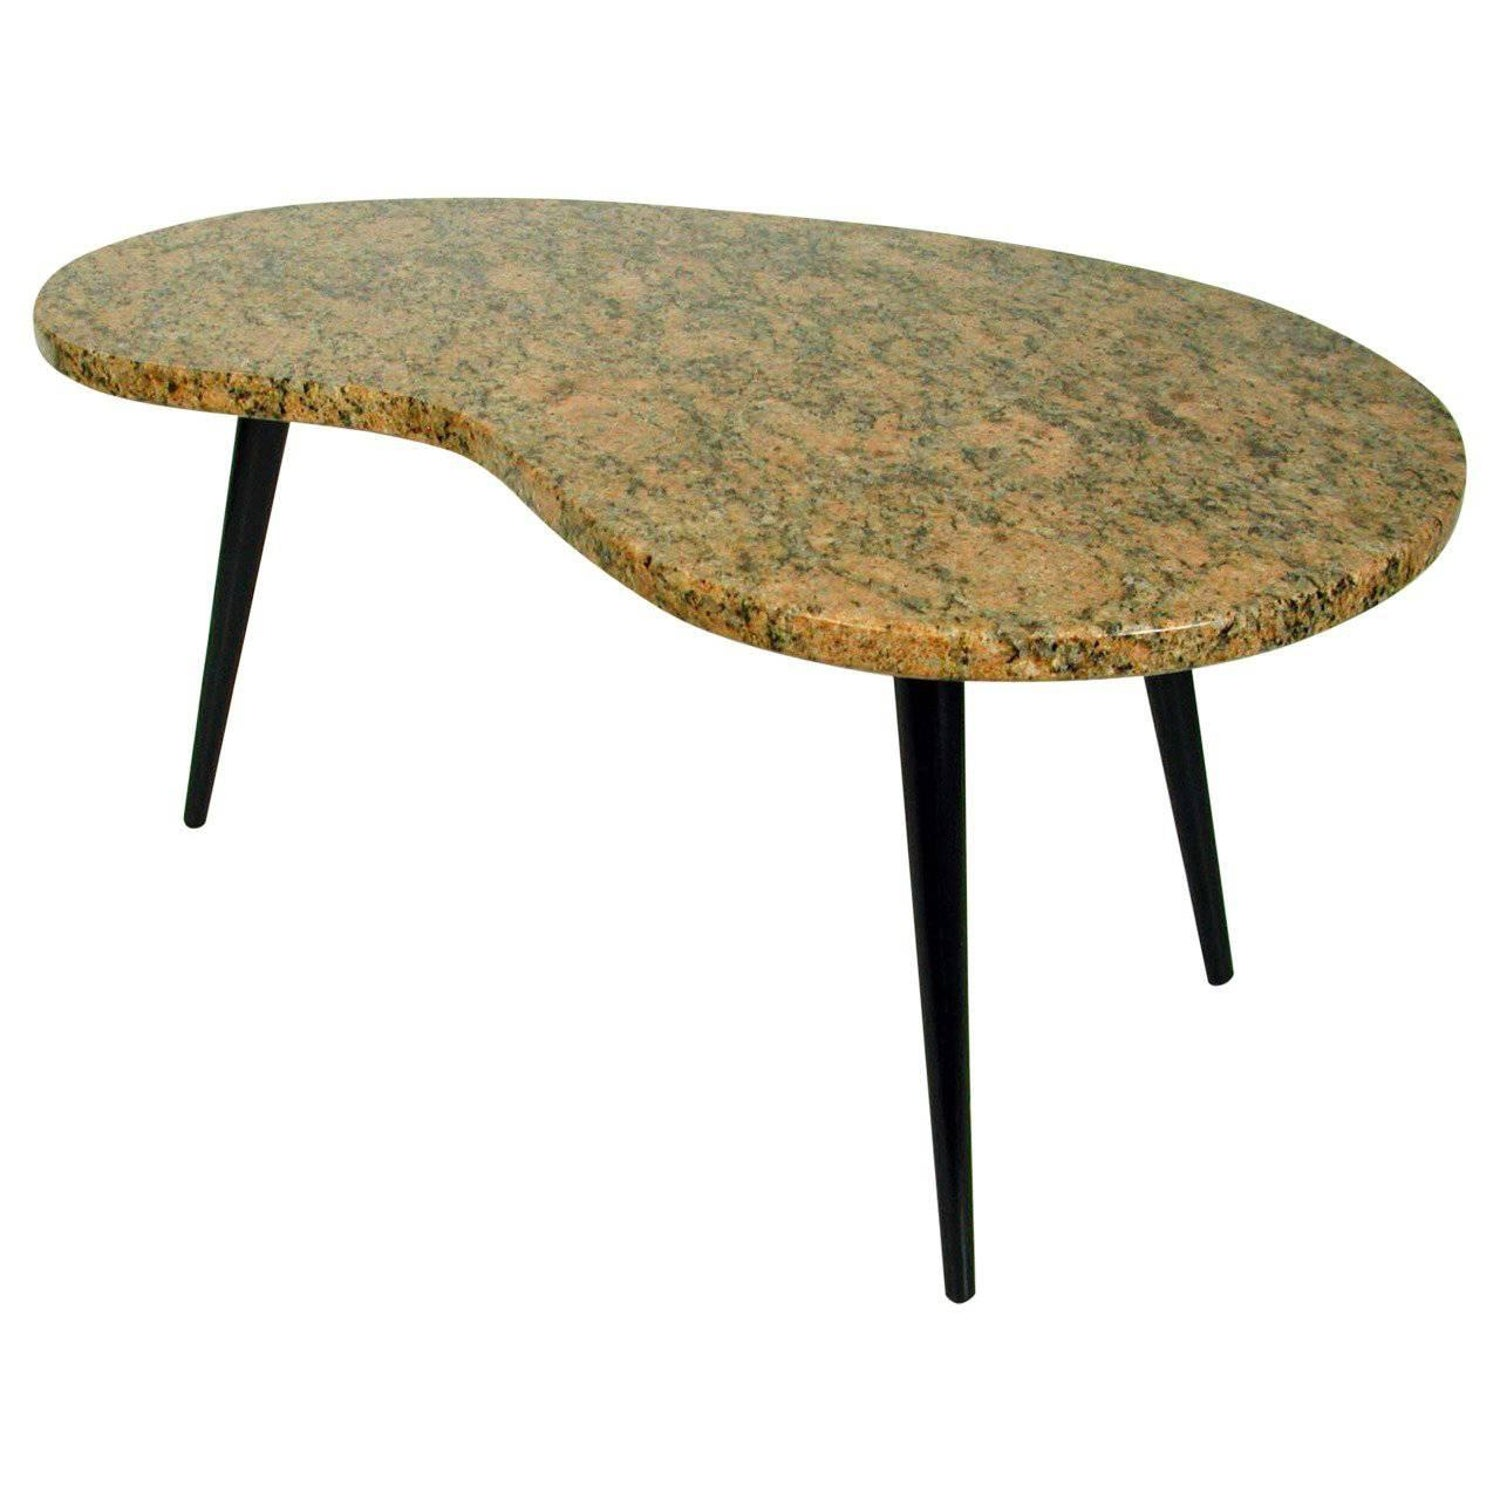 Italian Modern Marble Top Kidney Shaped Coffee Table For Sale at